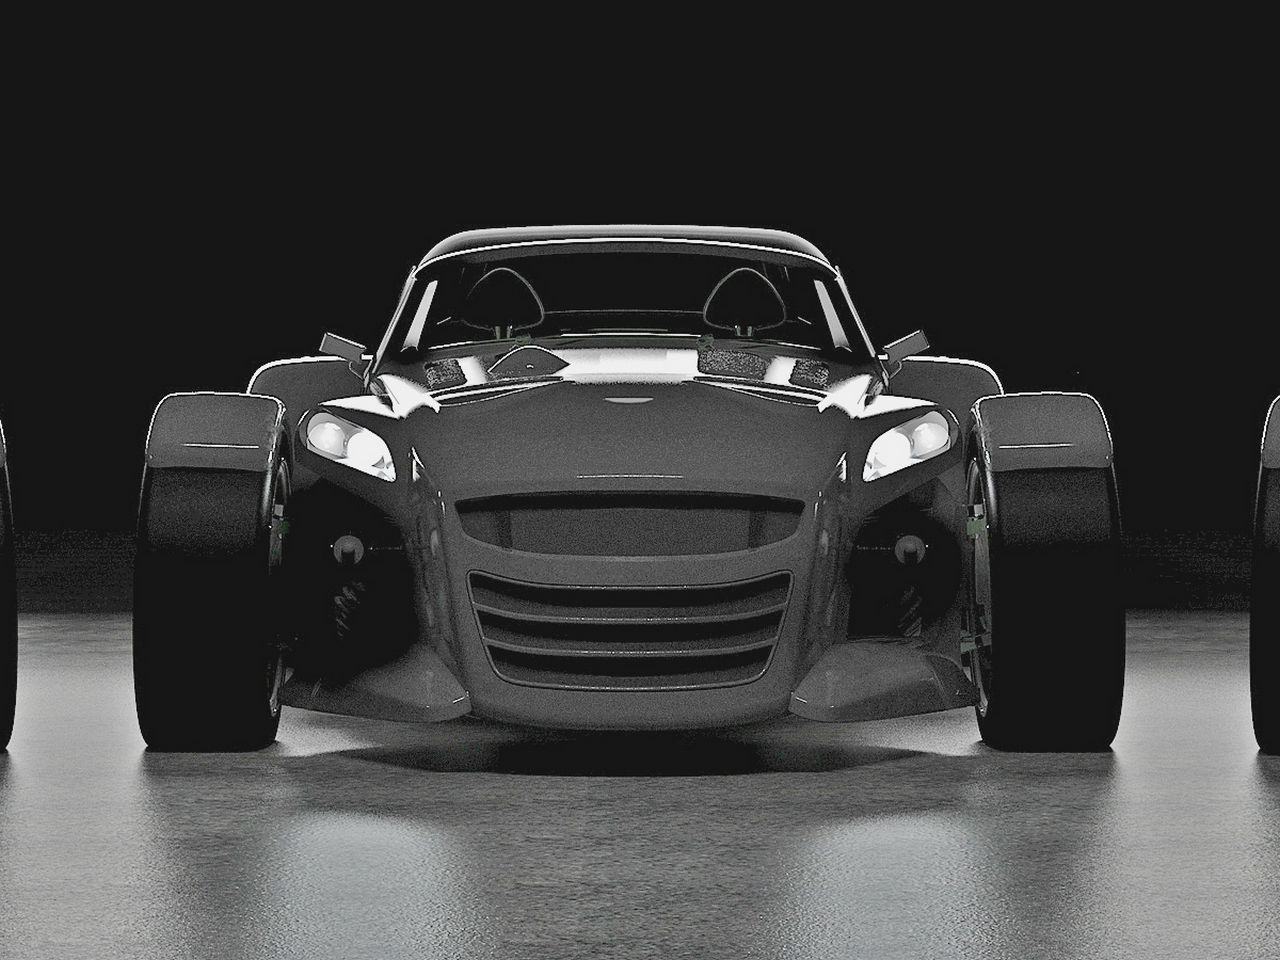 donkervoort-model-year-2016-prezzo-price_0-100_4